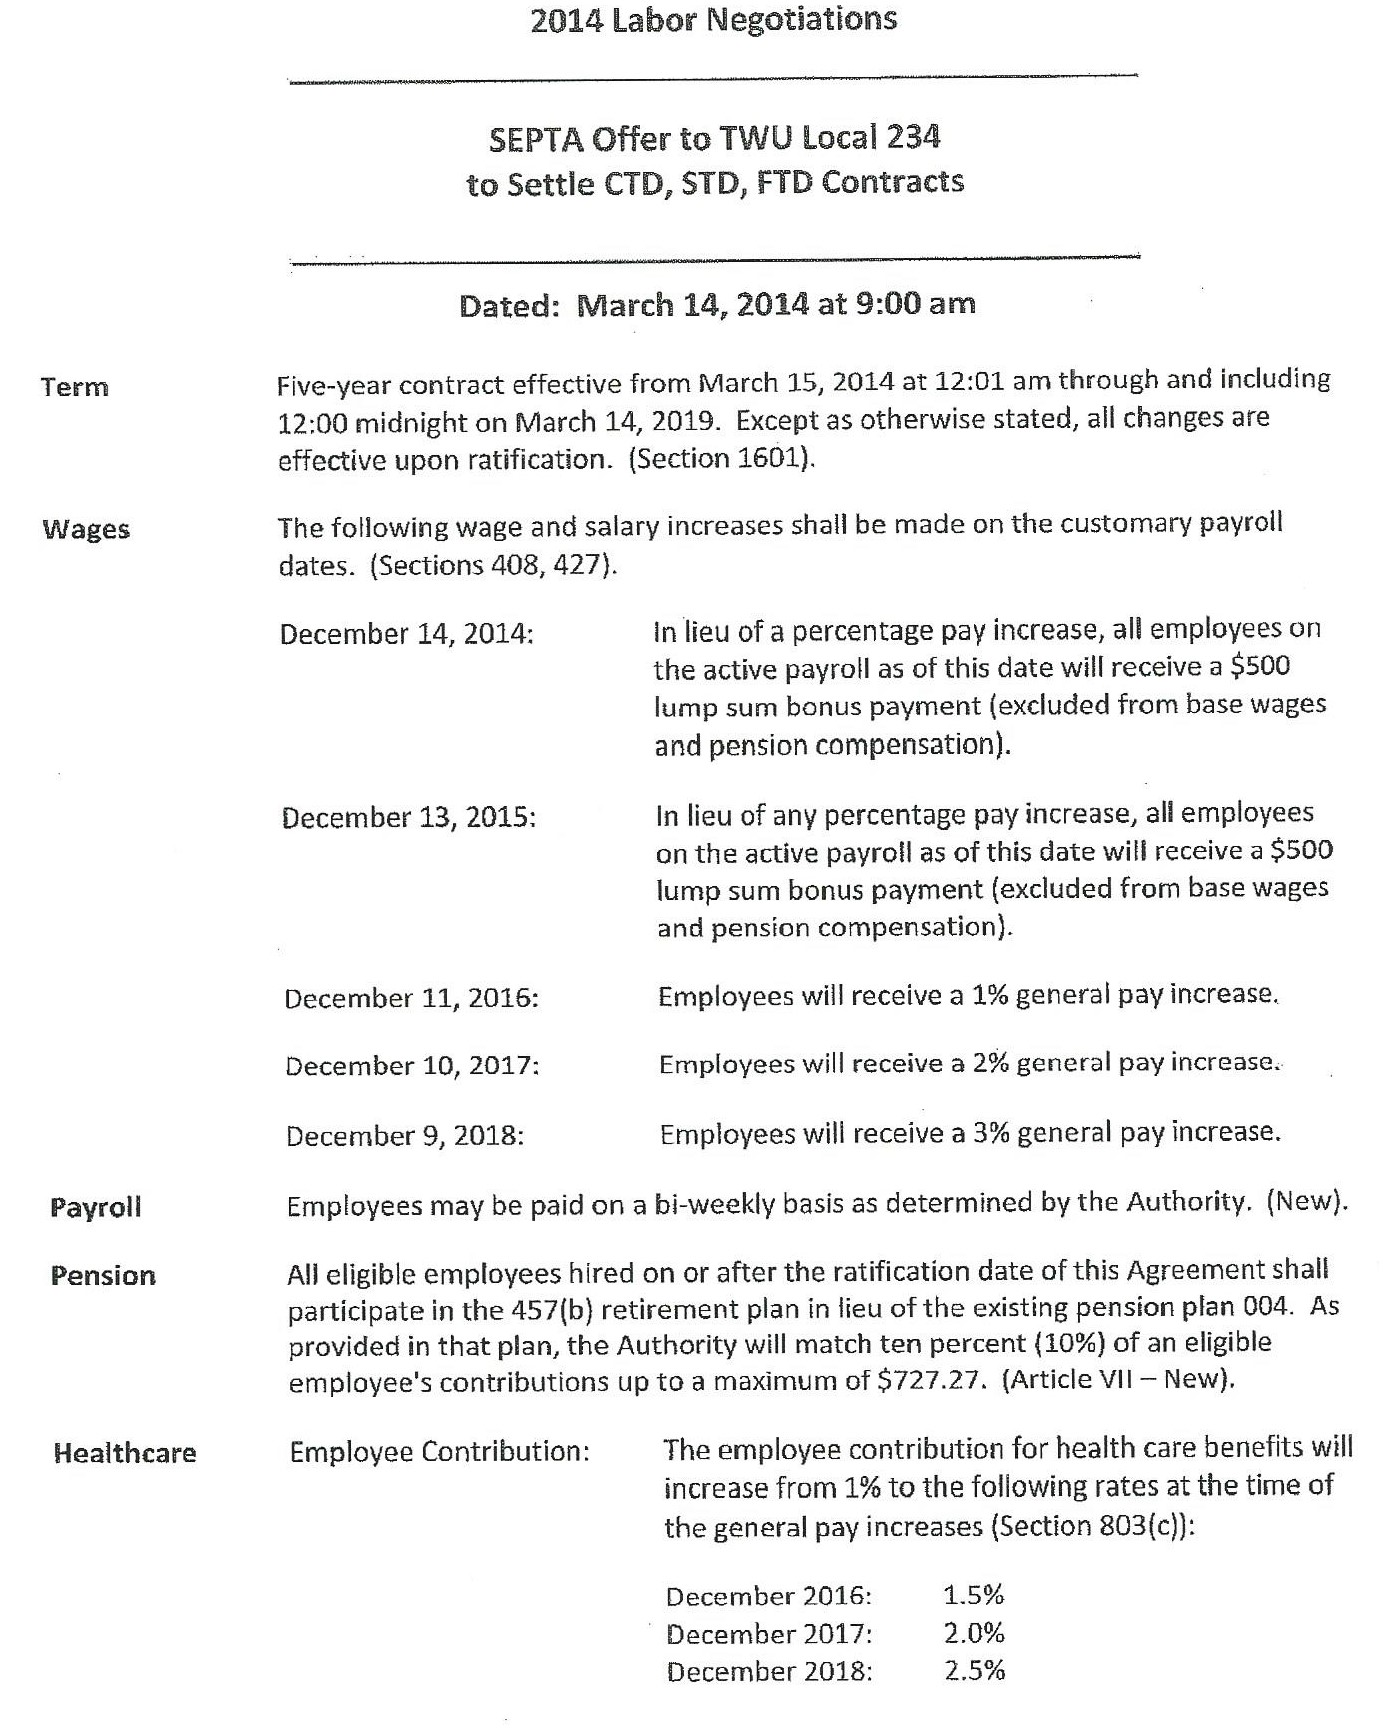 SEPTA_Contract_Proposal_Page_1.jpg